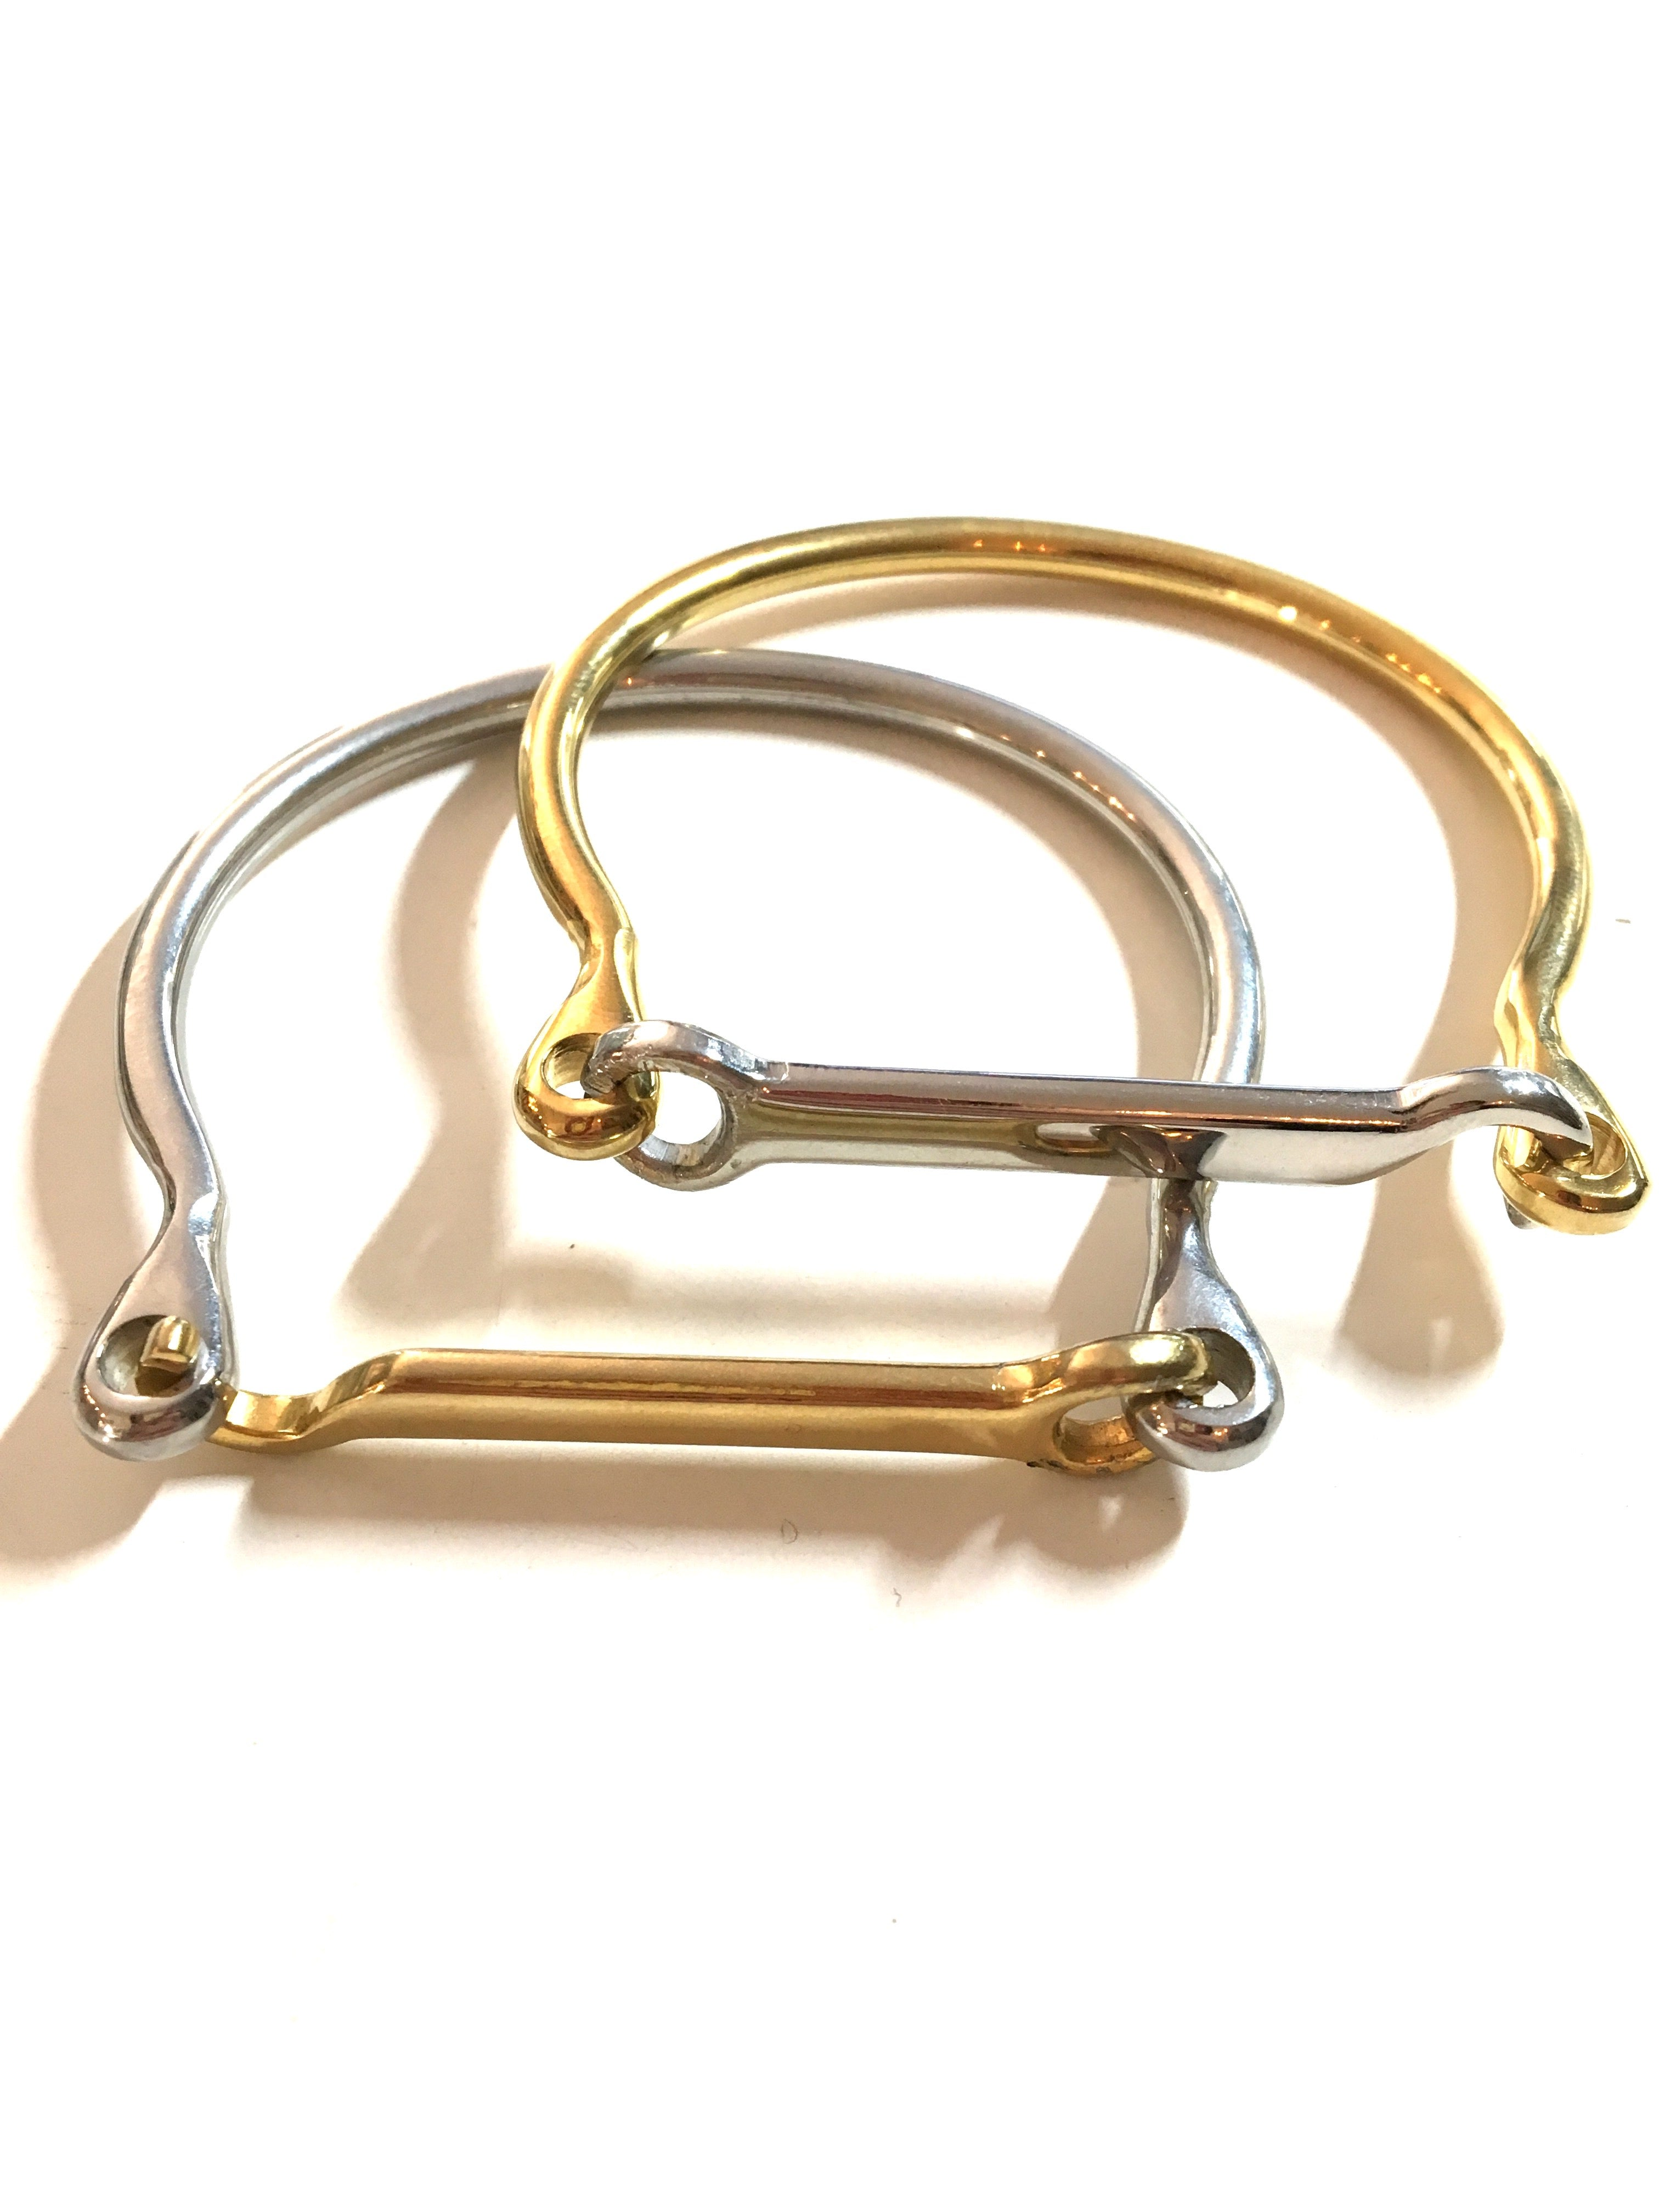 LUSITANO STIRRUP BANGLE - SILVER / GOLD | Equestrian Jewelry - AtelierCG™